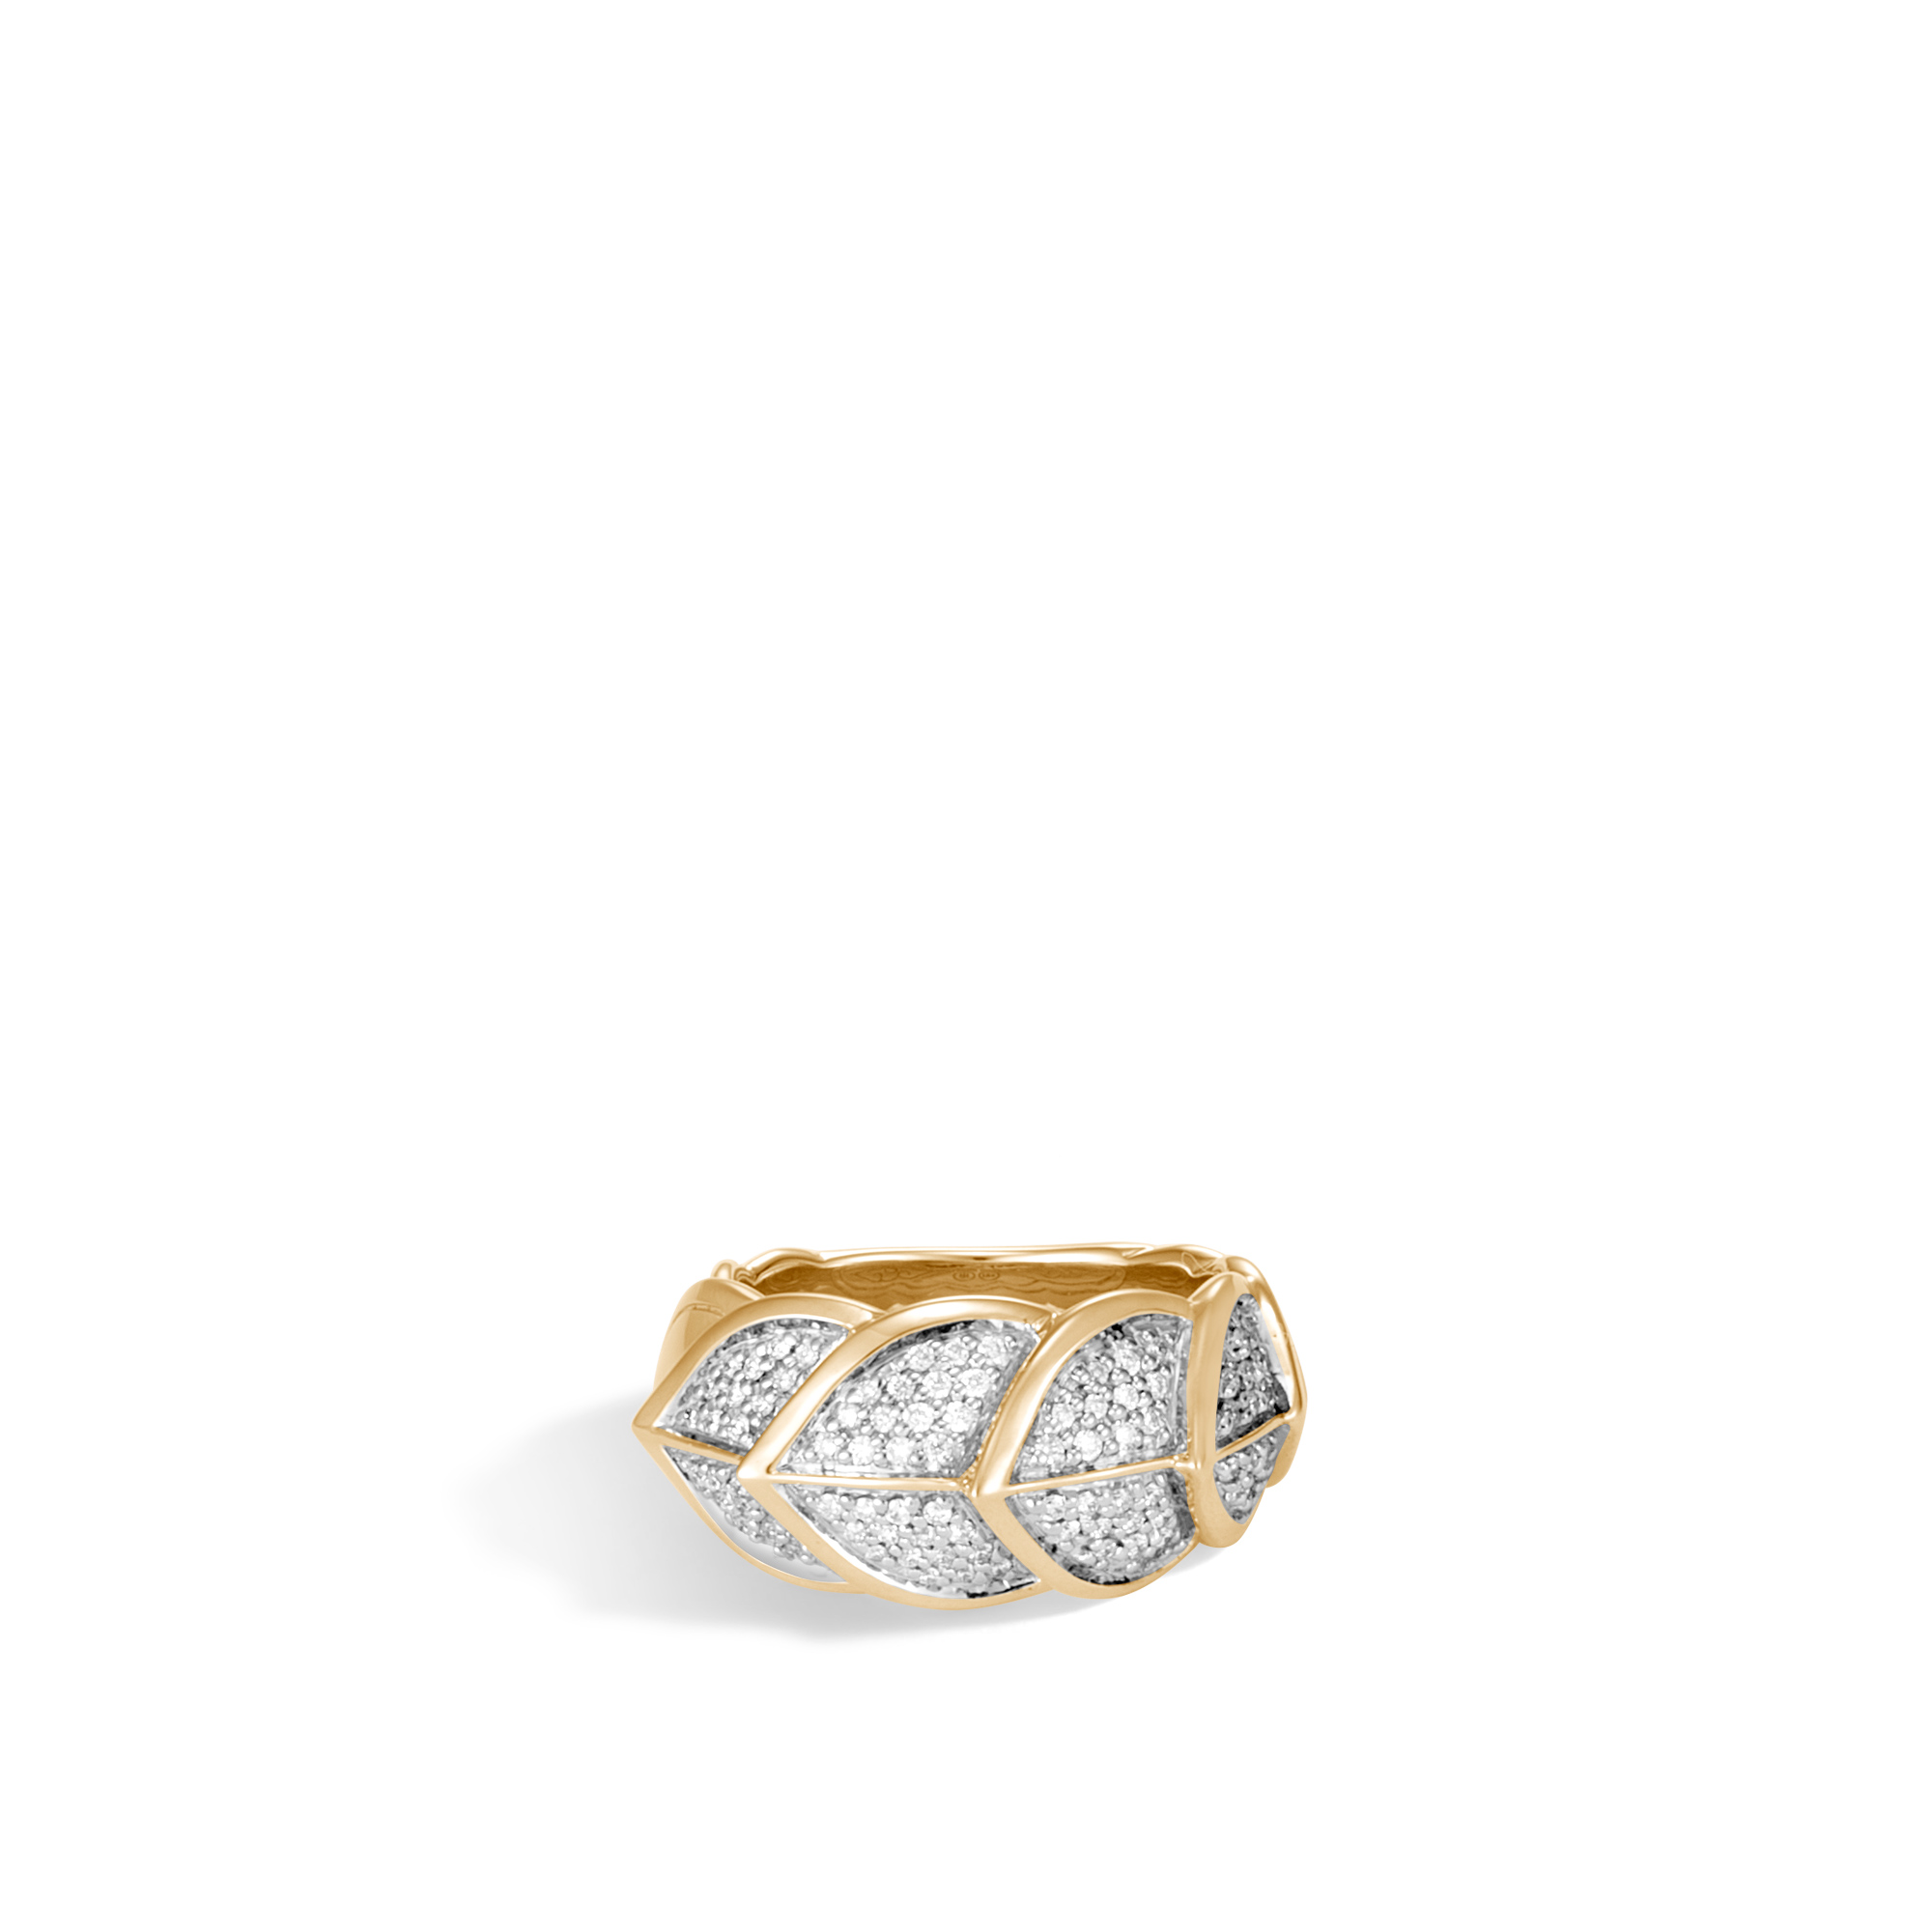 Legends Naga Ring in 18K Gold with Diamonds, White Diamond, large